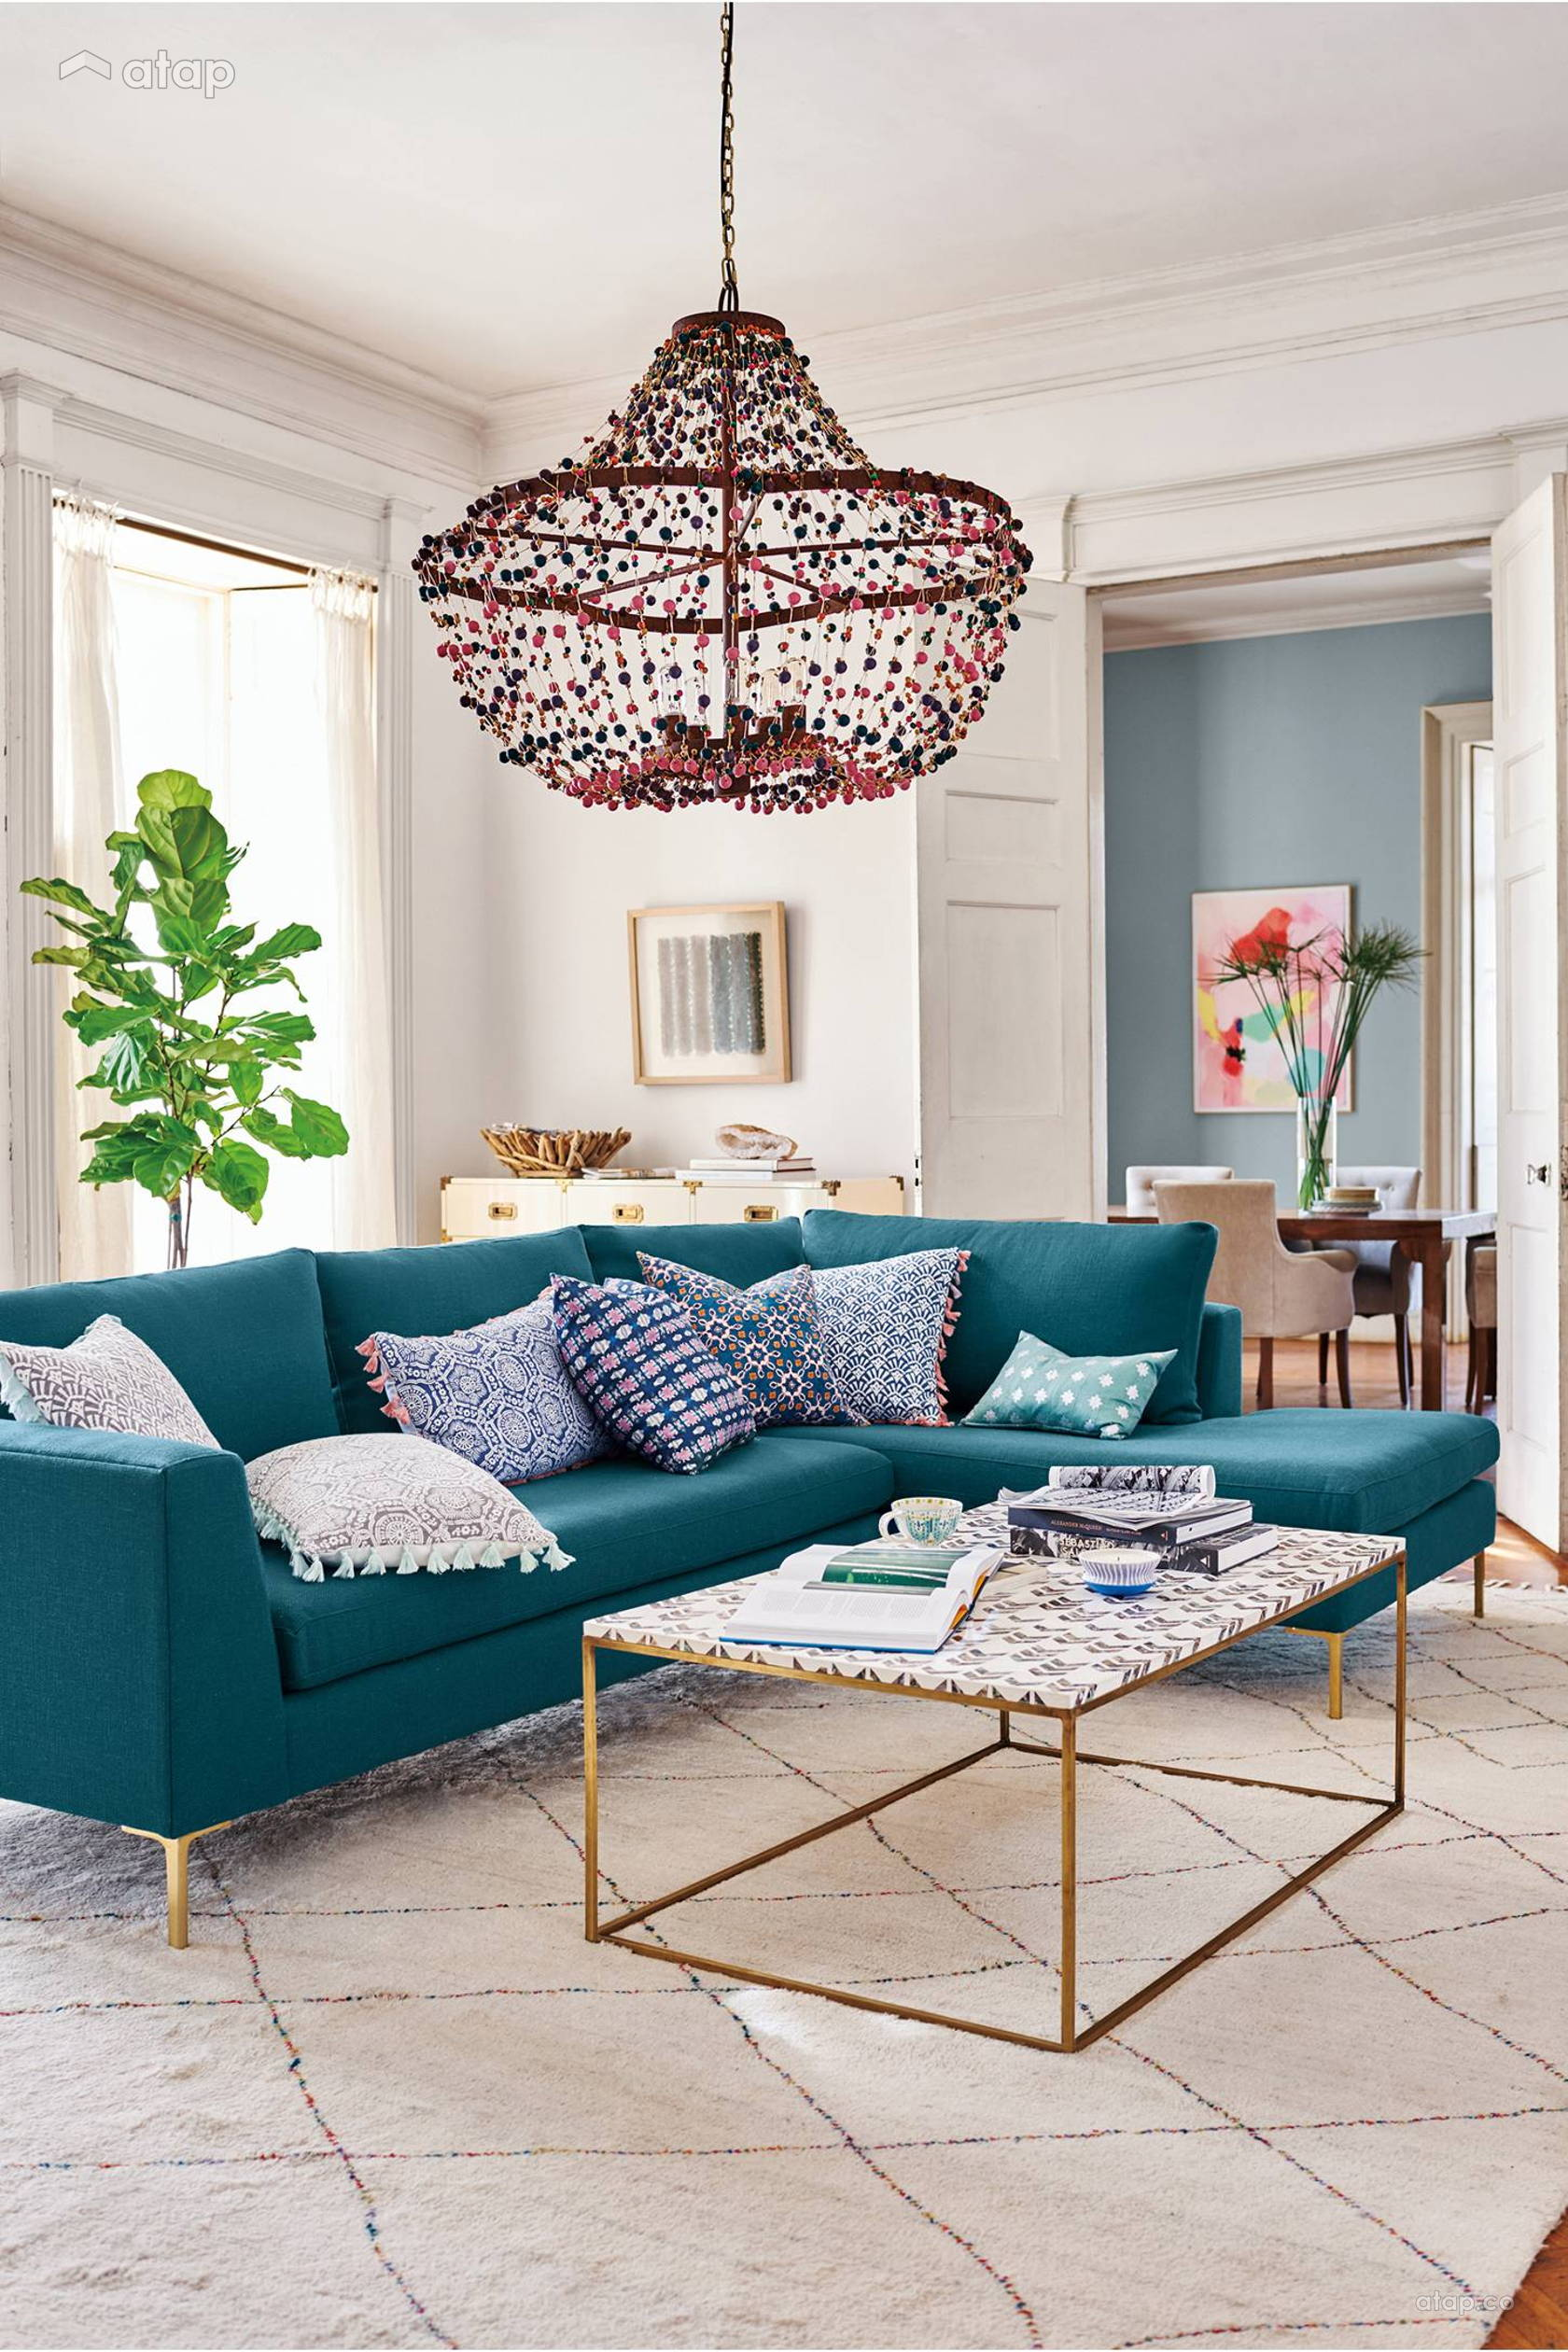 A Beginners Guide To Pulling Off Mismatched Furniture